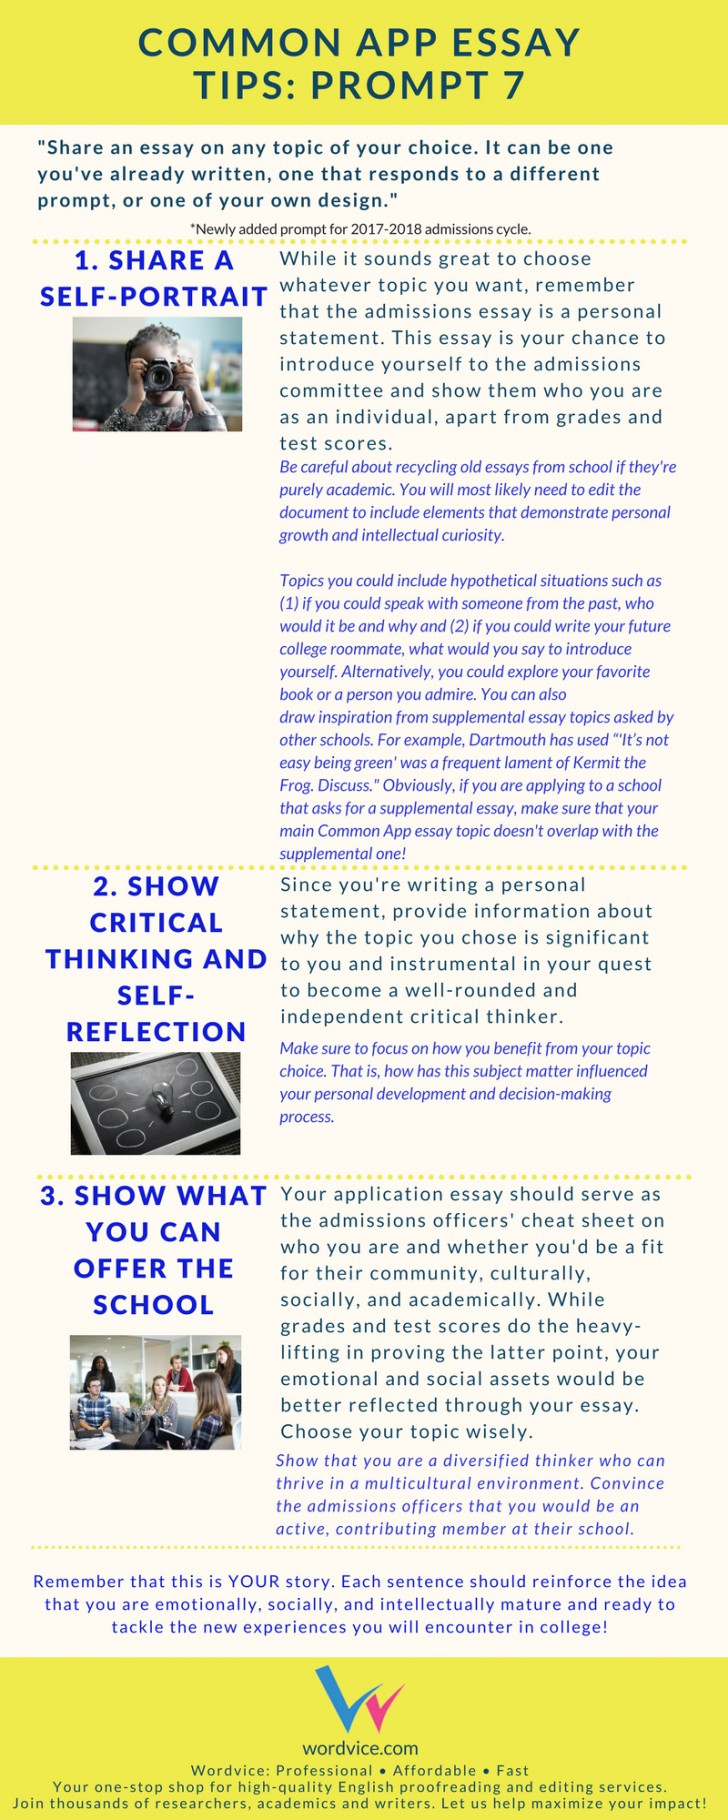 010 Common Application Essay Prompts Example App Brainstormprompt Best 2017 Examples 2017-18 A Guide 728